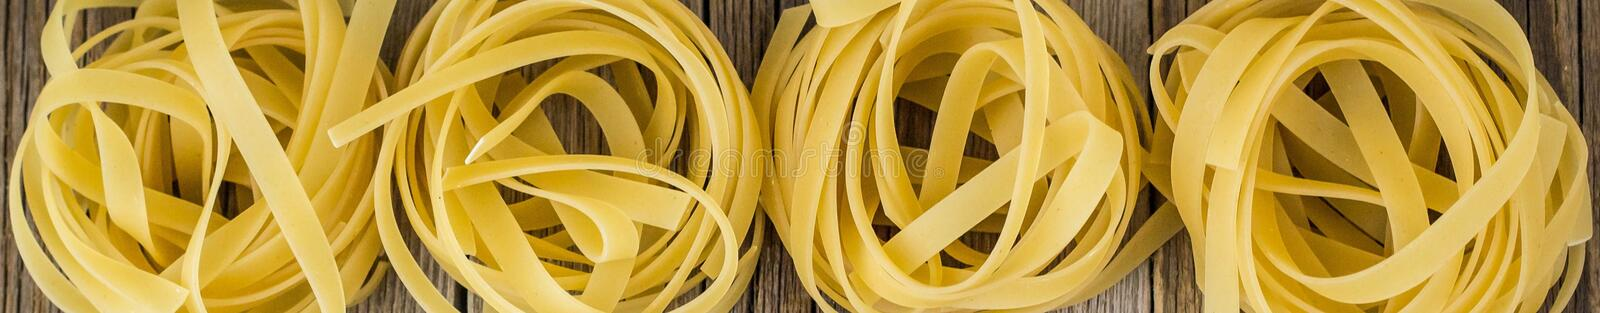 Banner of Nests of raw fettuccine pasta on the wood background. Banner of Raw fettuccine pasta on the wood backgroud ready for cooking. Top view. Copy space stock images